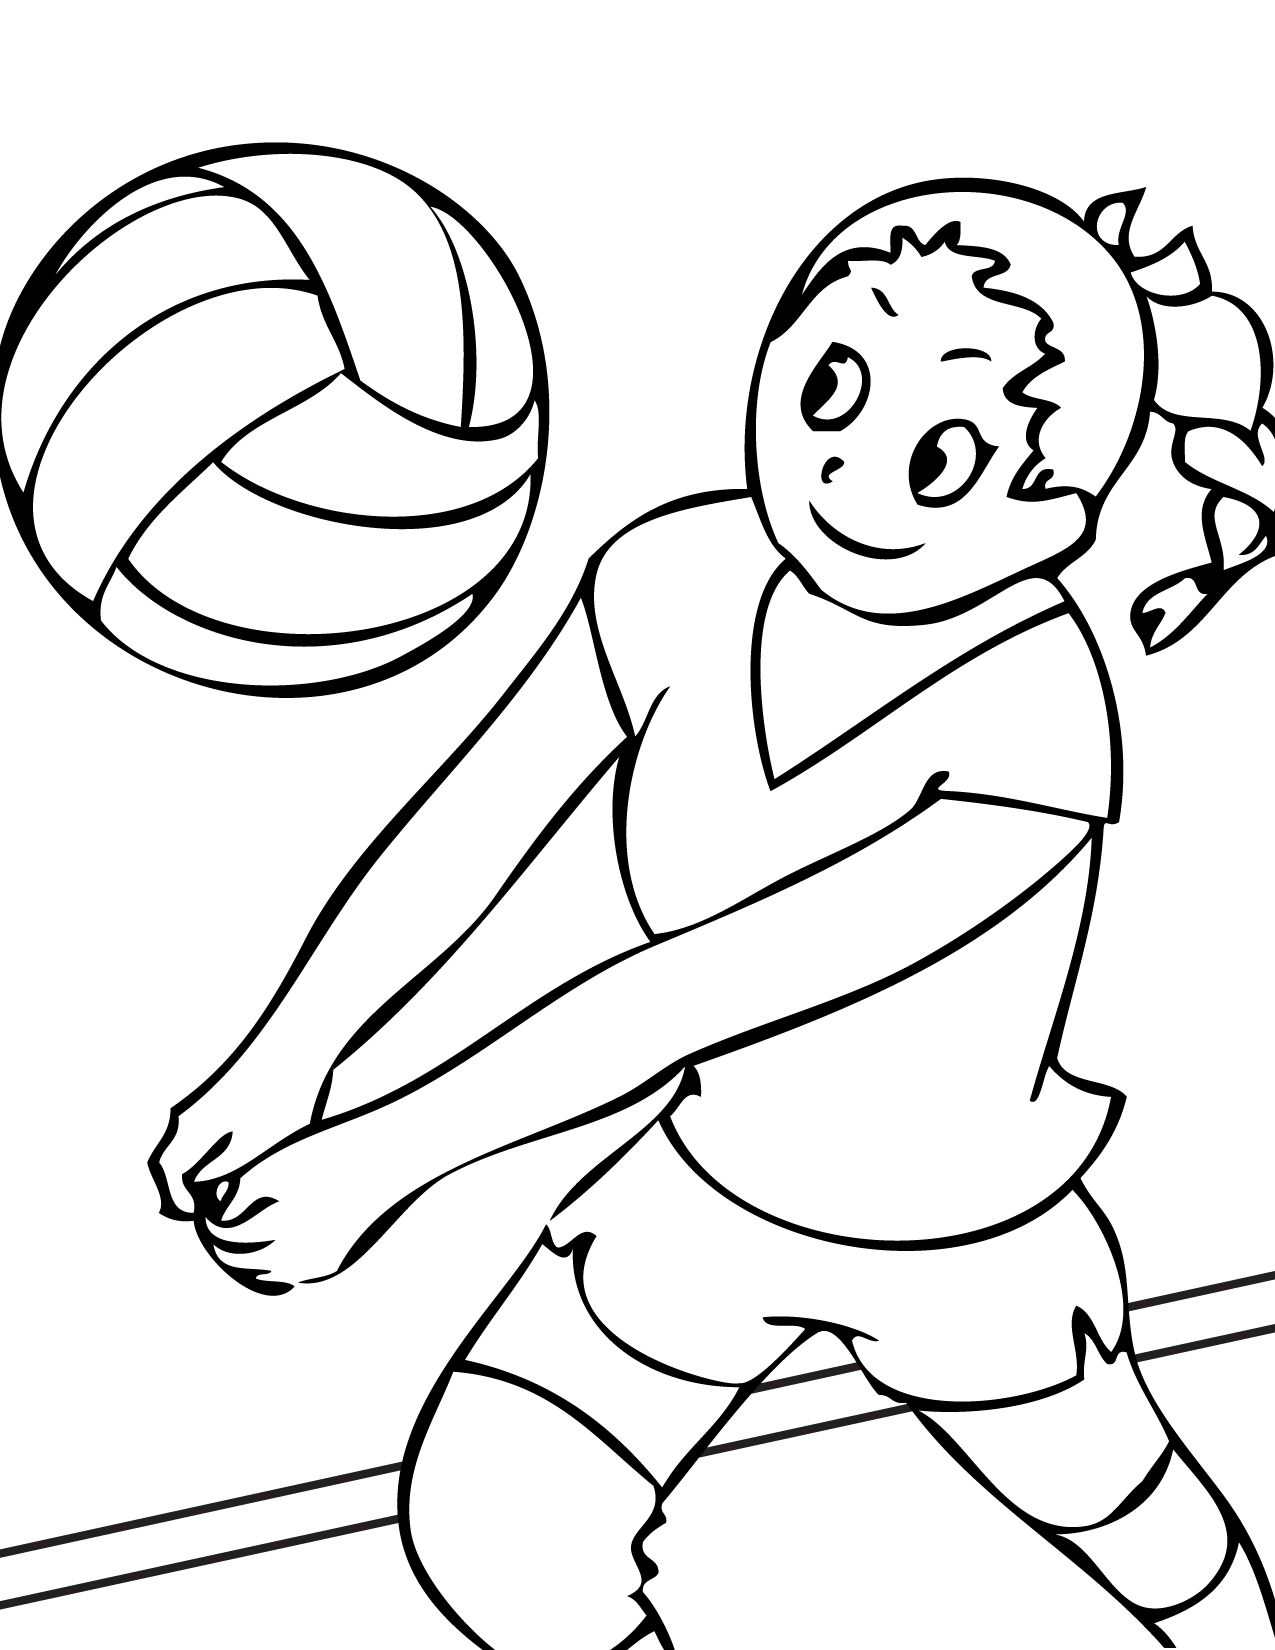 1275x1650 Volleyball Sports Coloring Pages Printable